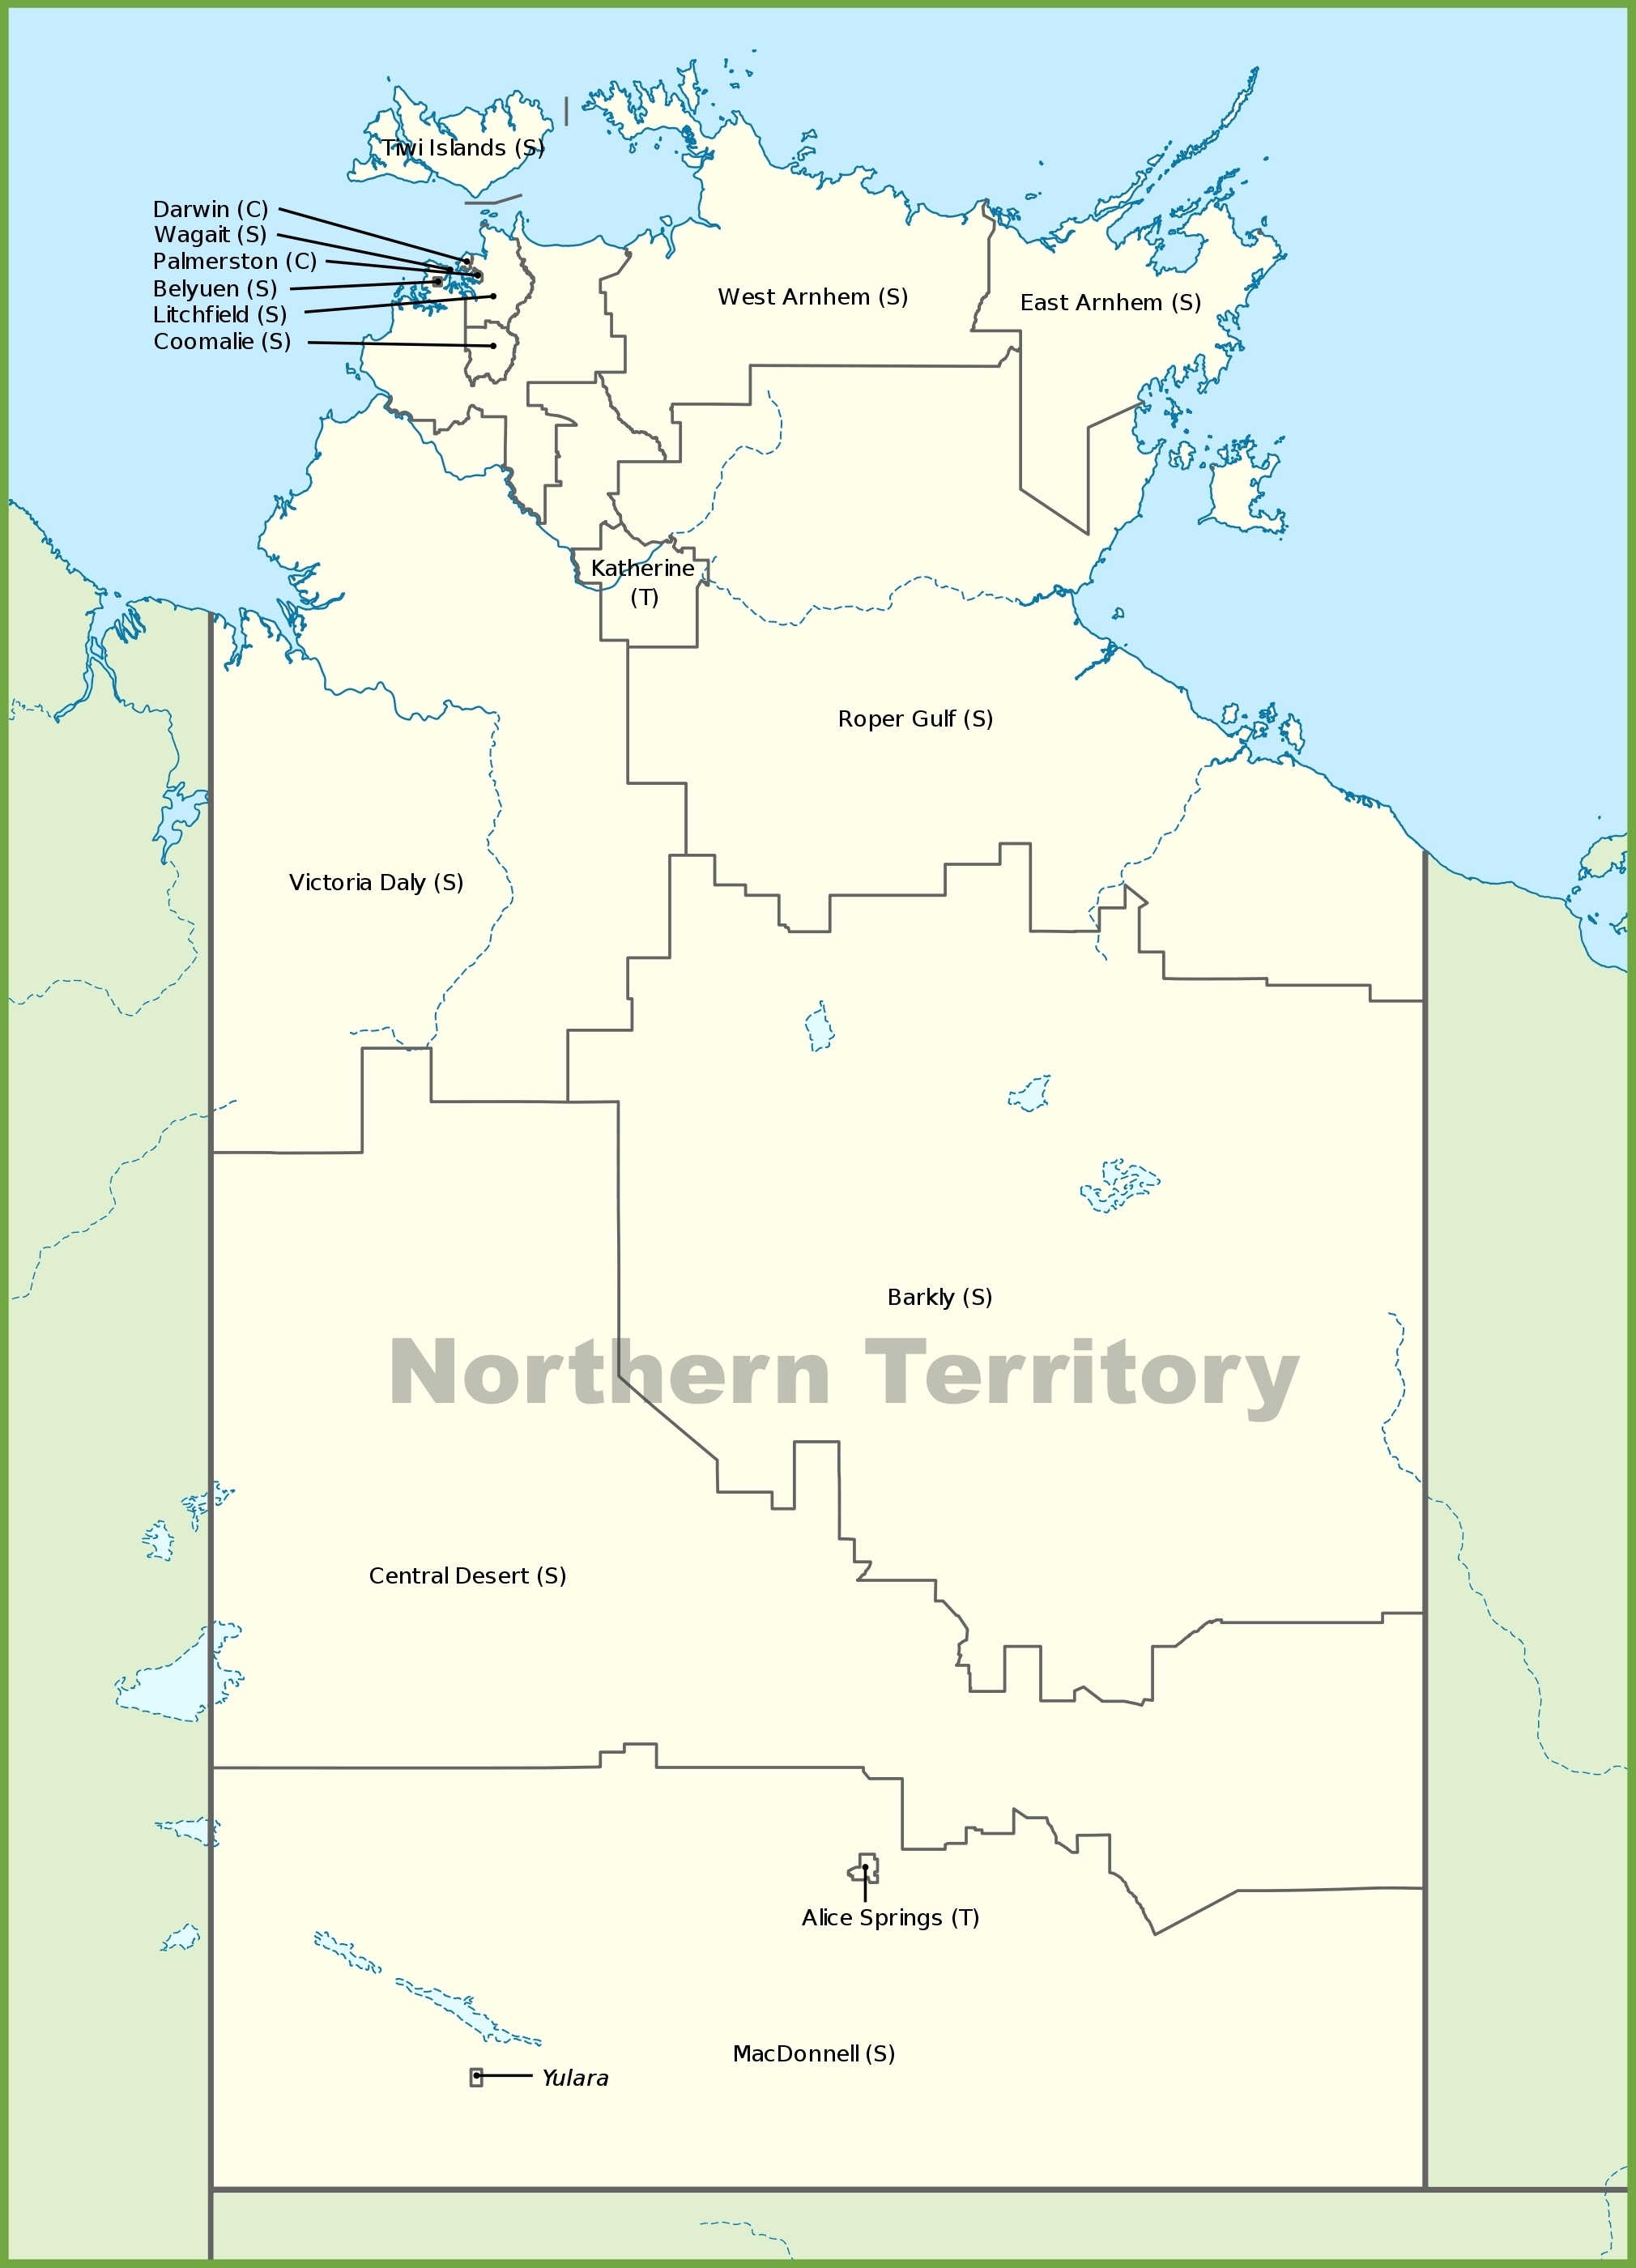 Northern Territory Local Government Area Map pertaining to Northern Territory Map Australia